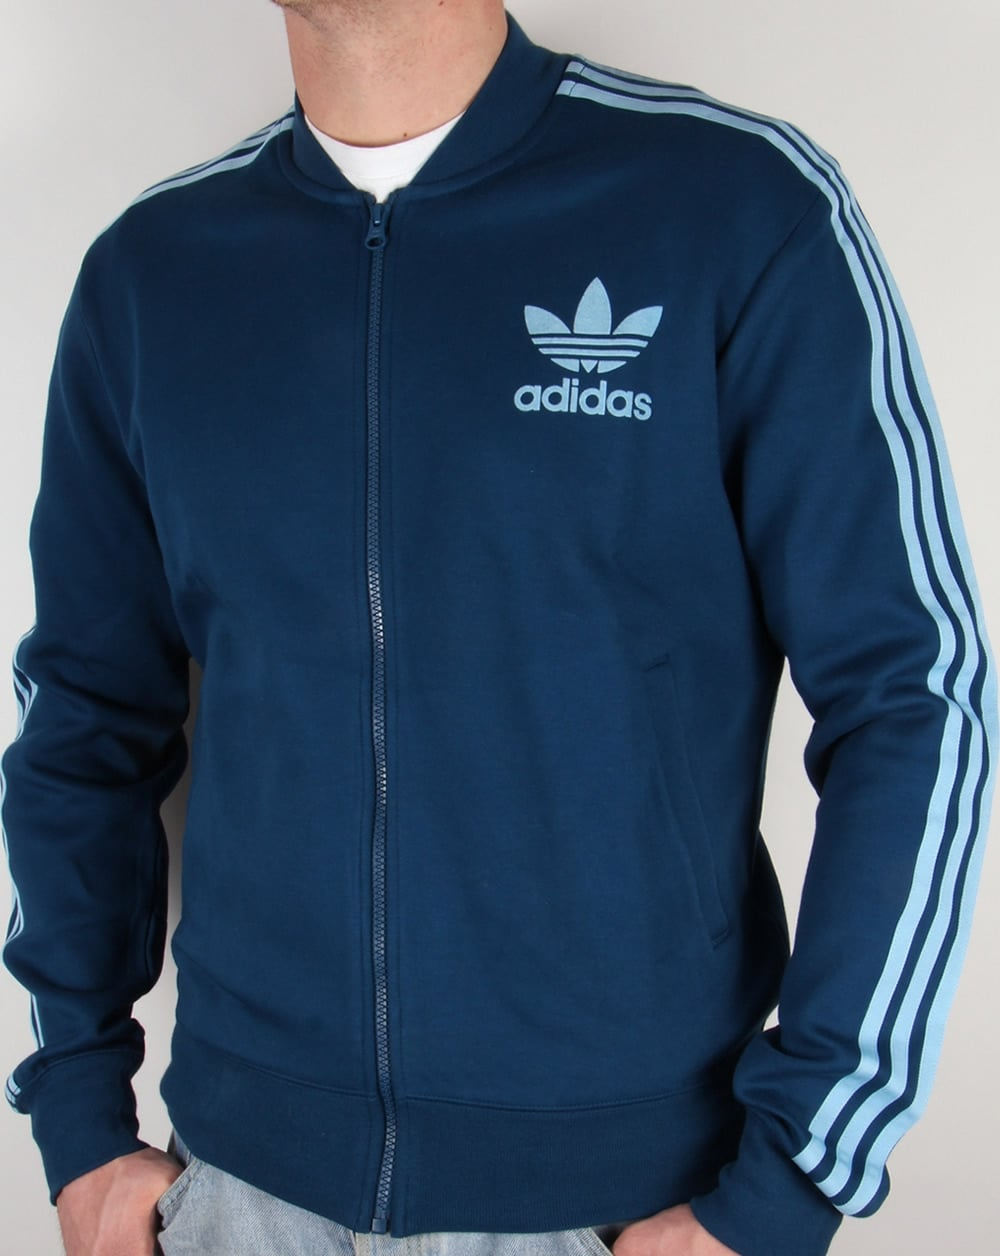 adidas originals retro superstar track top blue clear blue. Black Bedroom Furniture Sets. Home Design Ideas